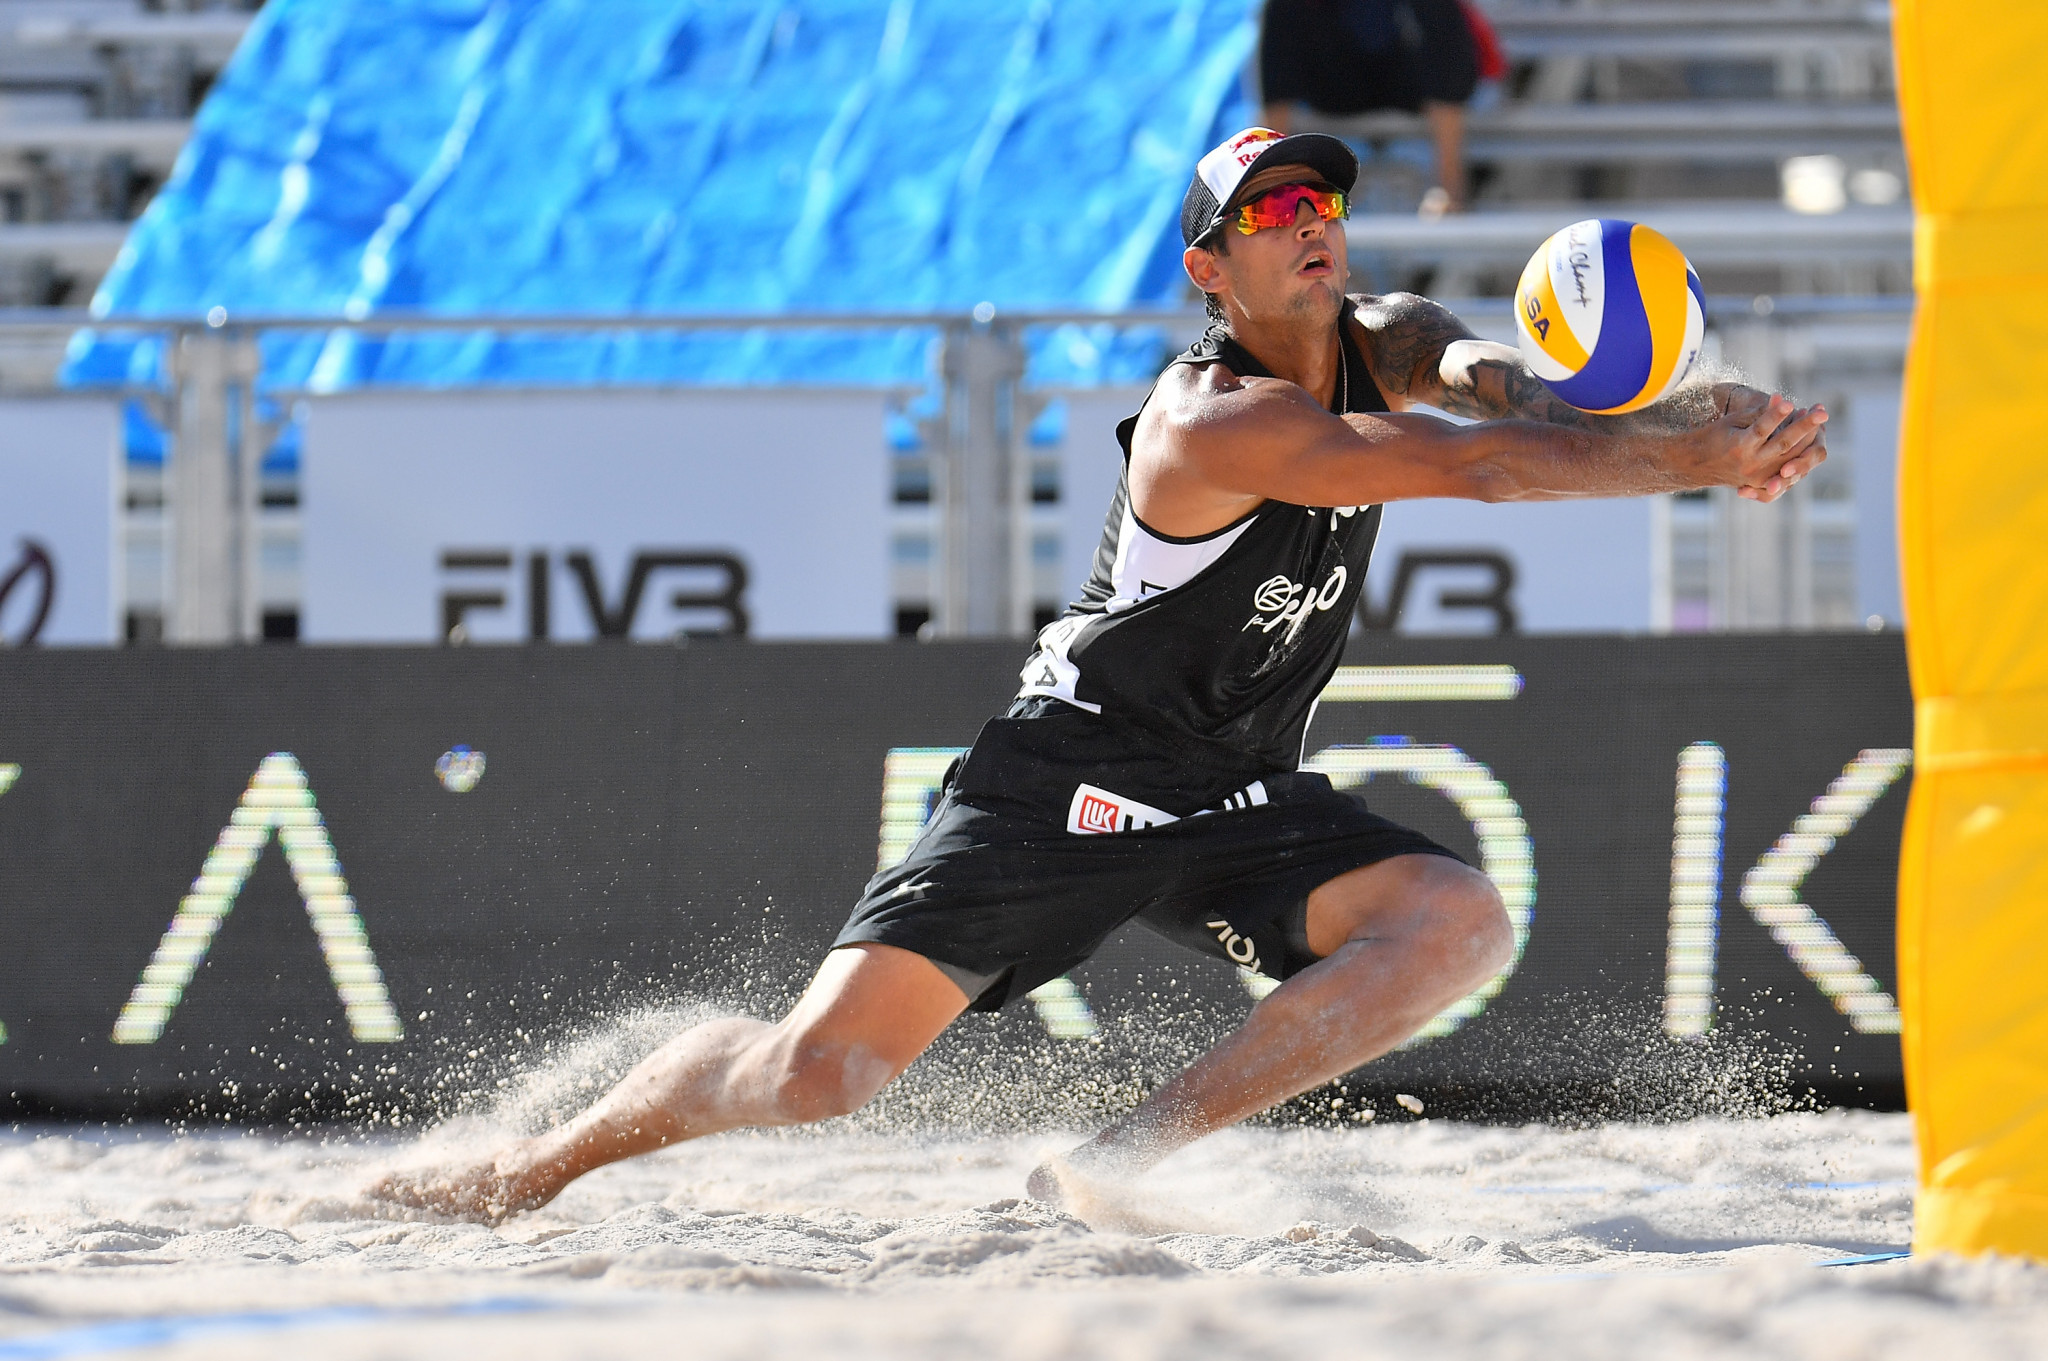 FIVB launches bidding process for three future Beach Volleyball World Championships